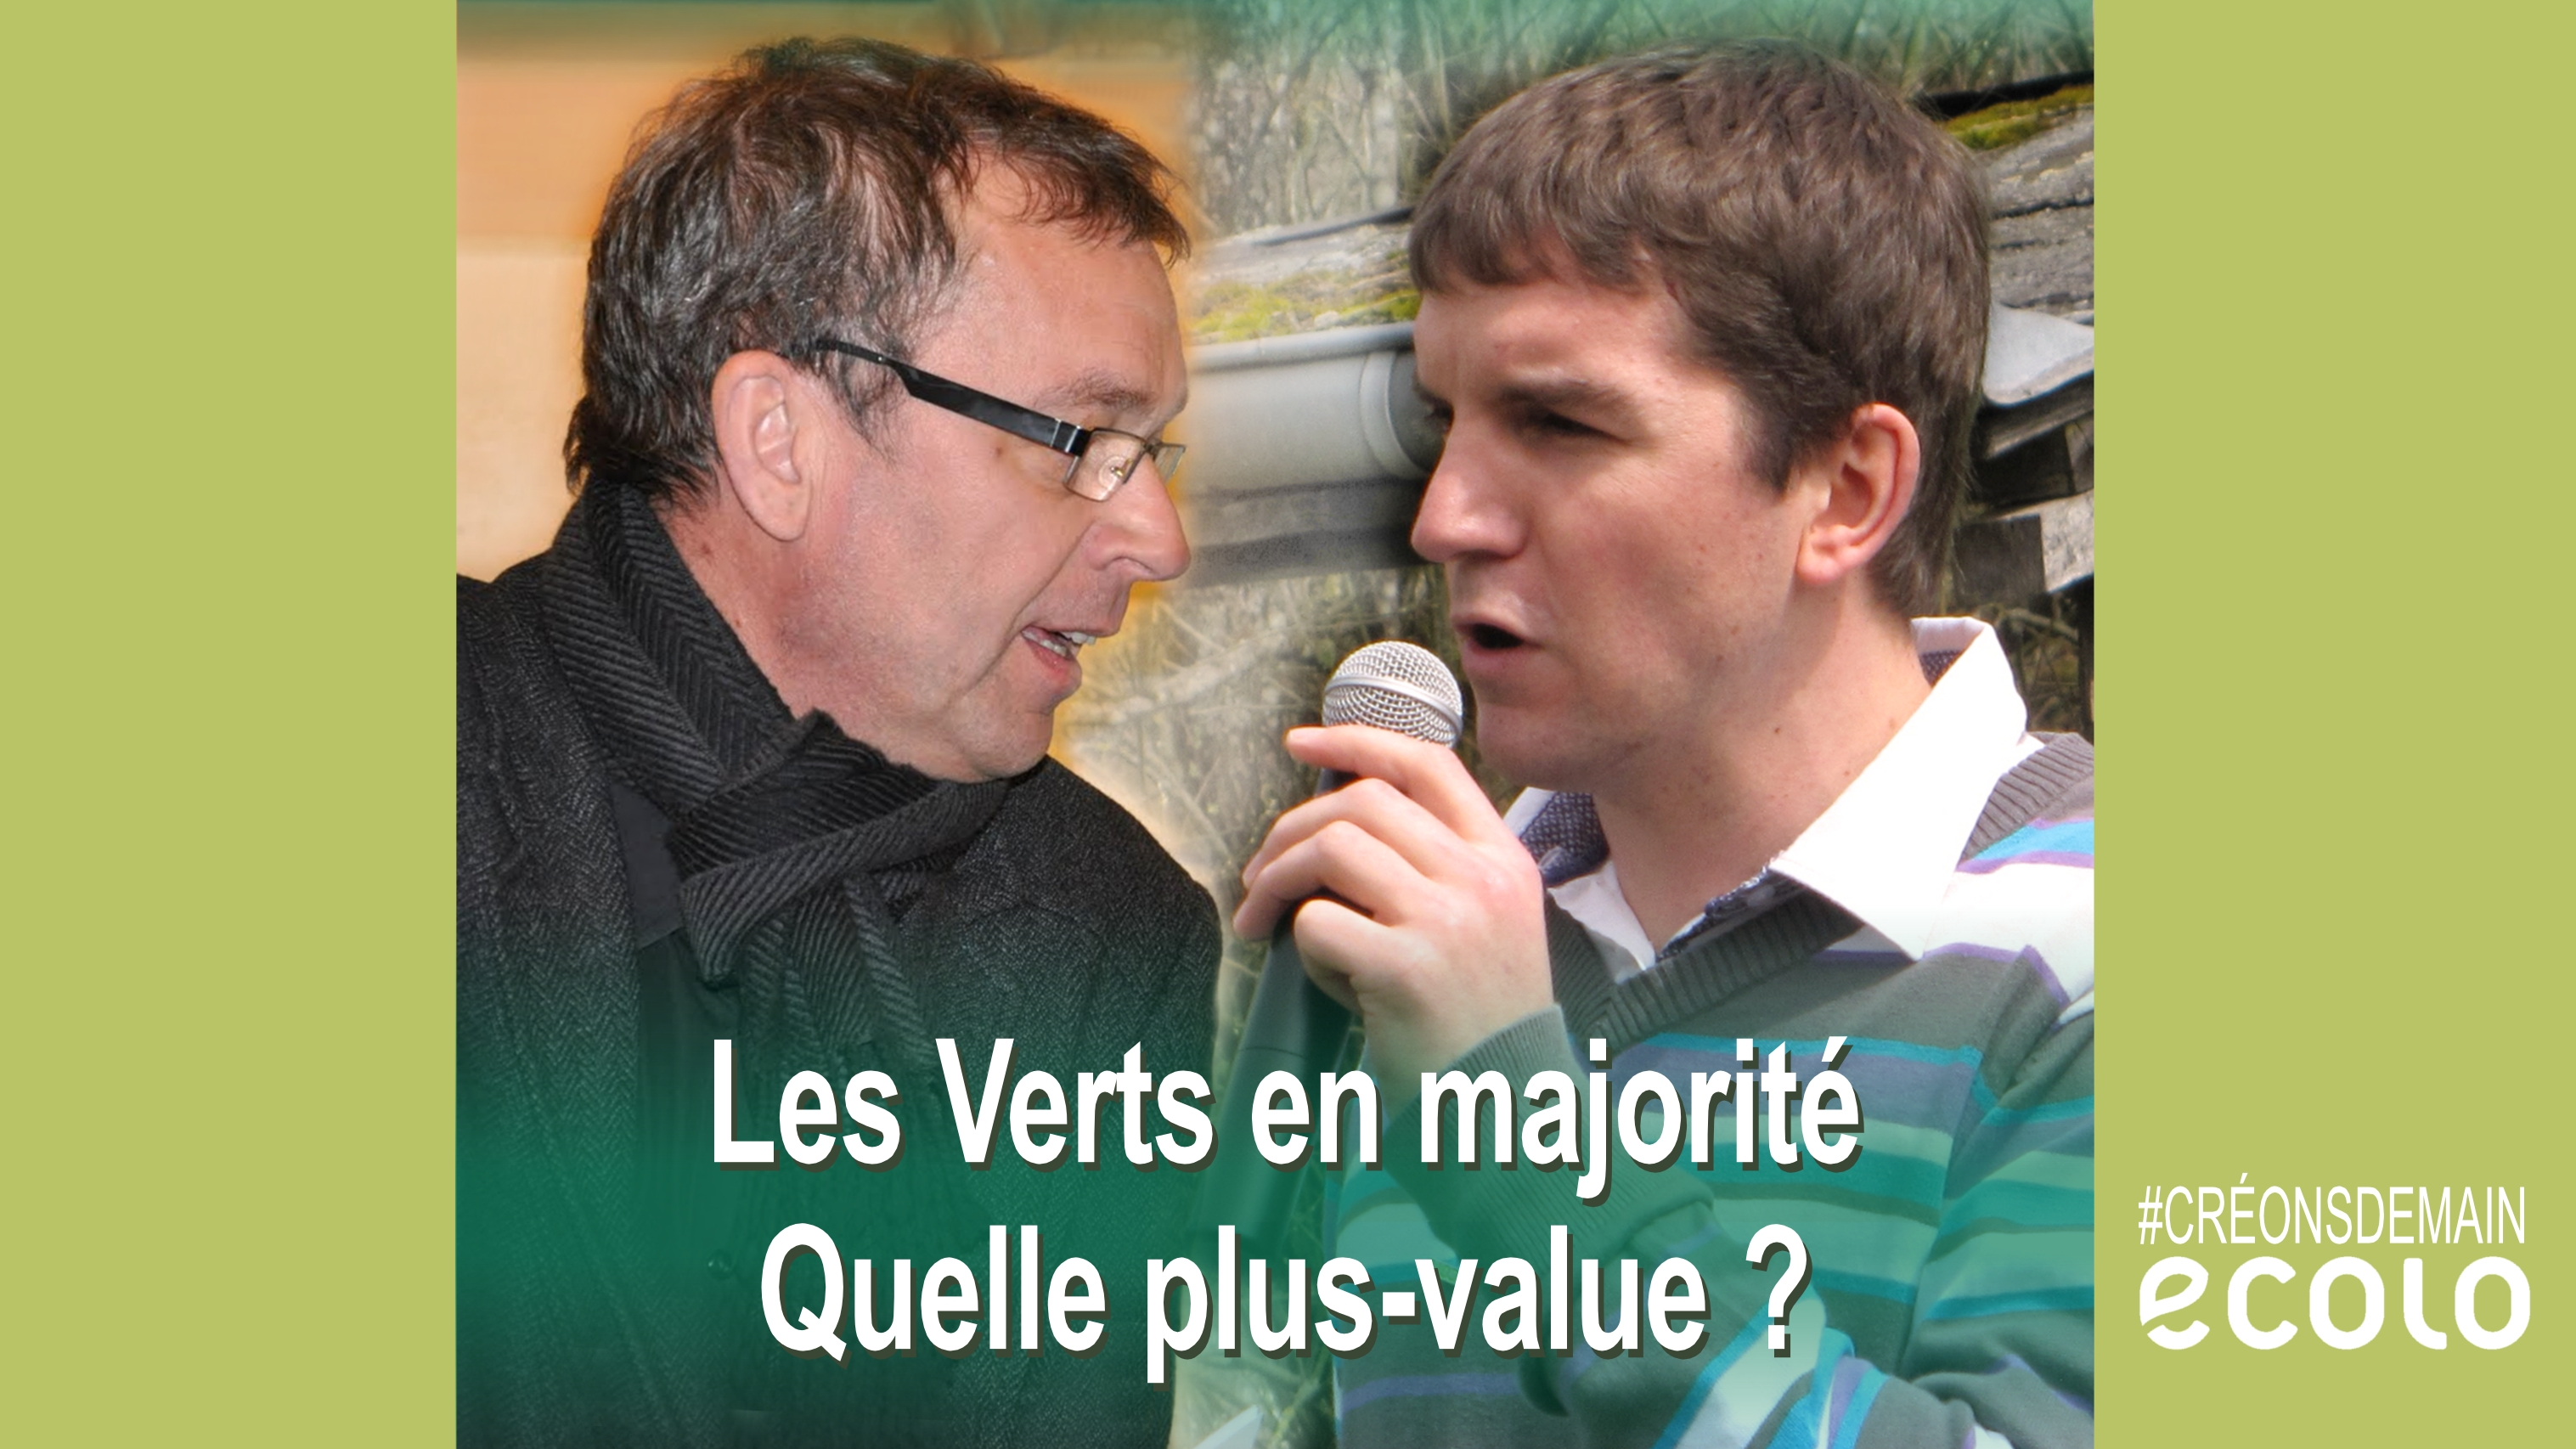 Samedi 1er avril >  ECOLO en majorité, quelle plus-value ?